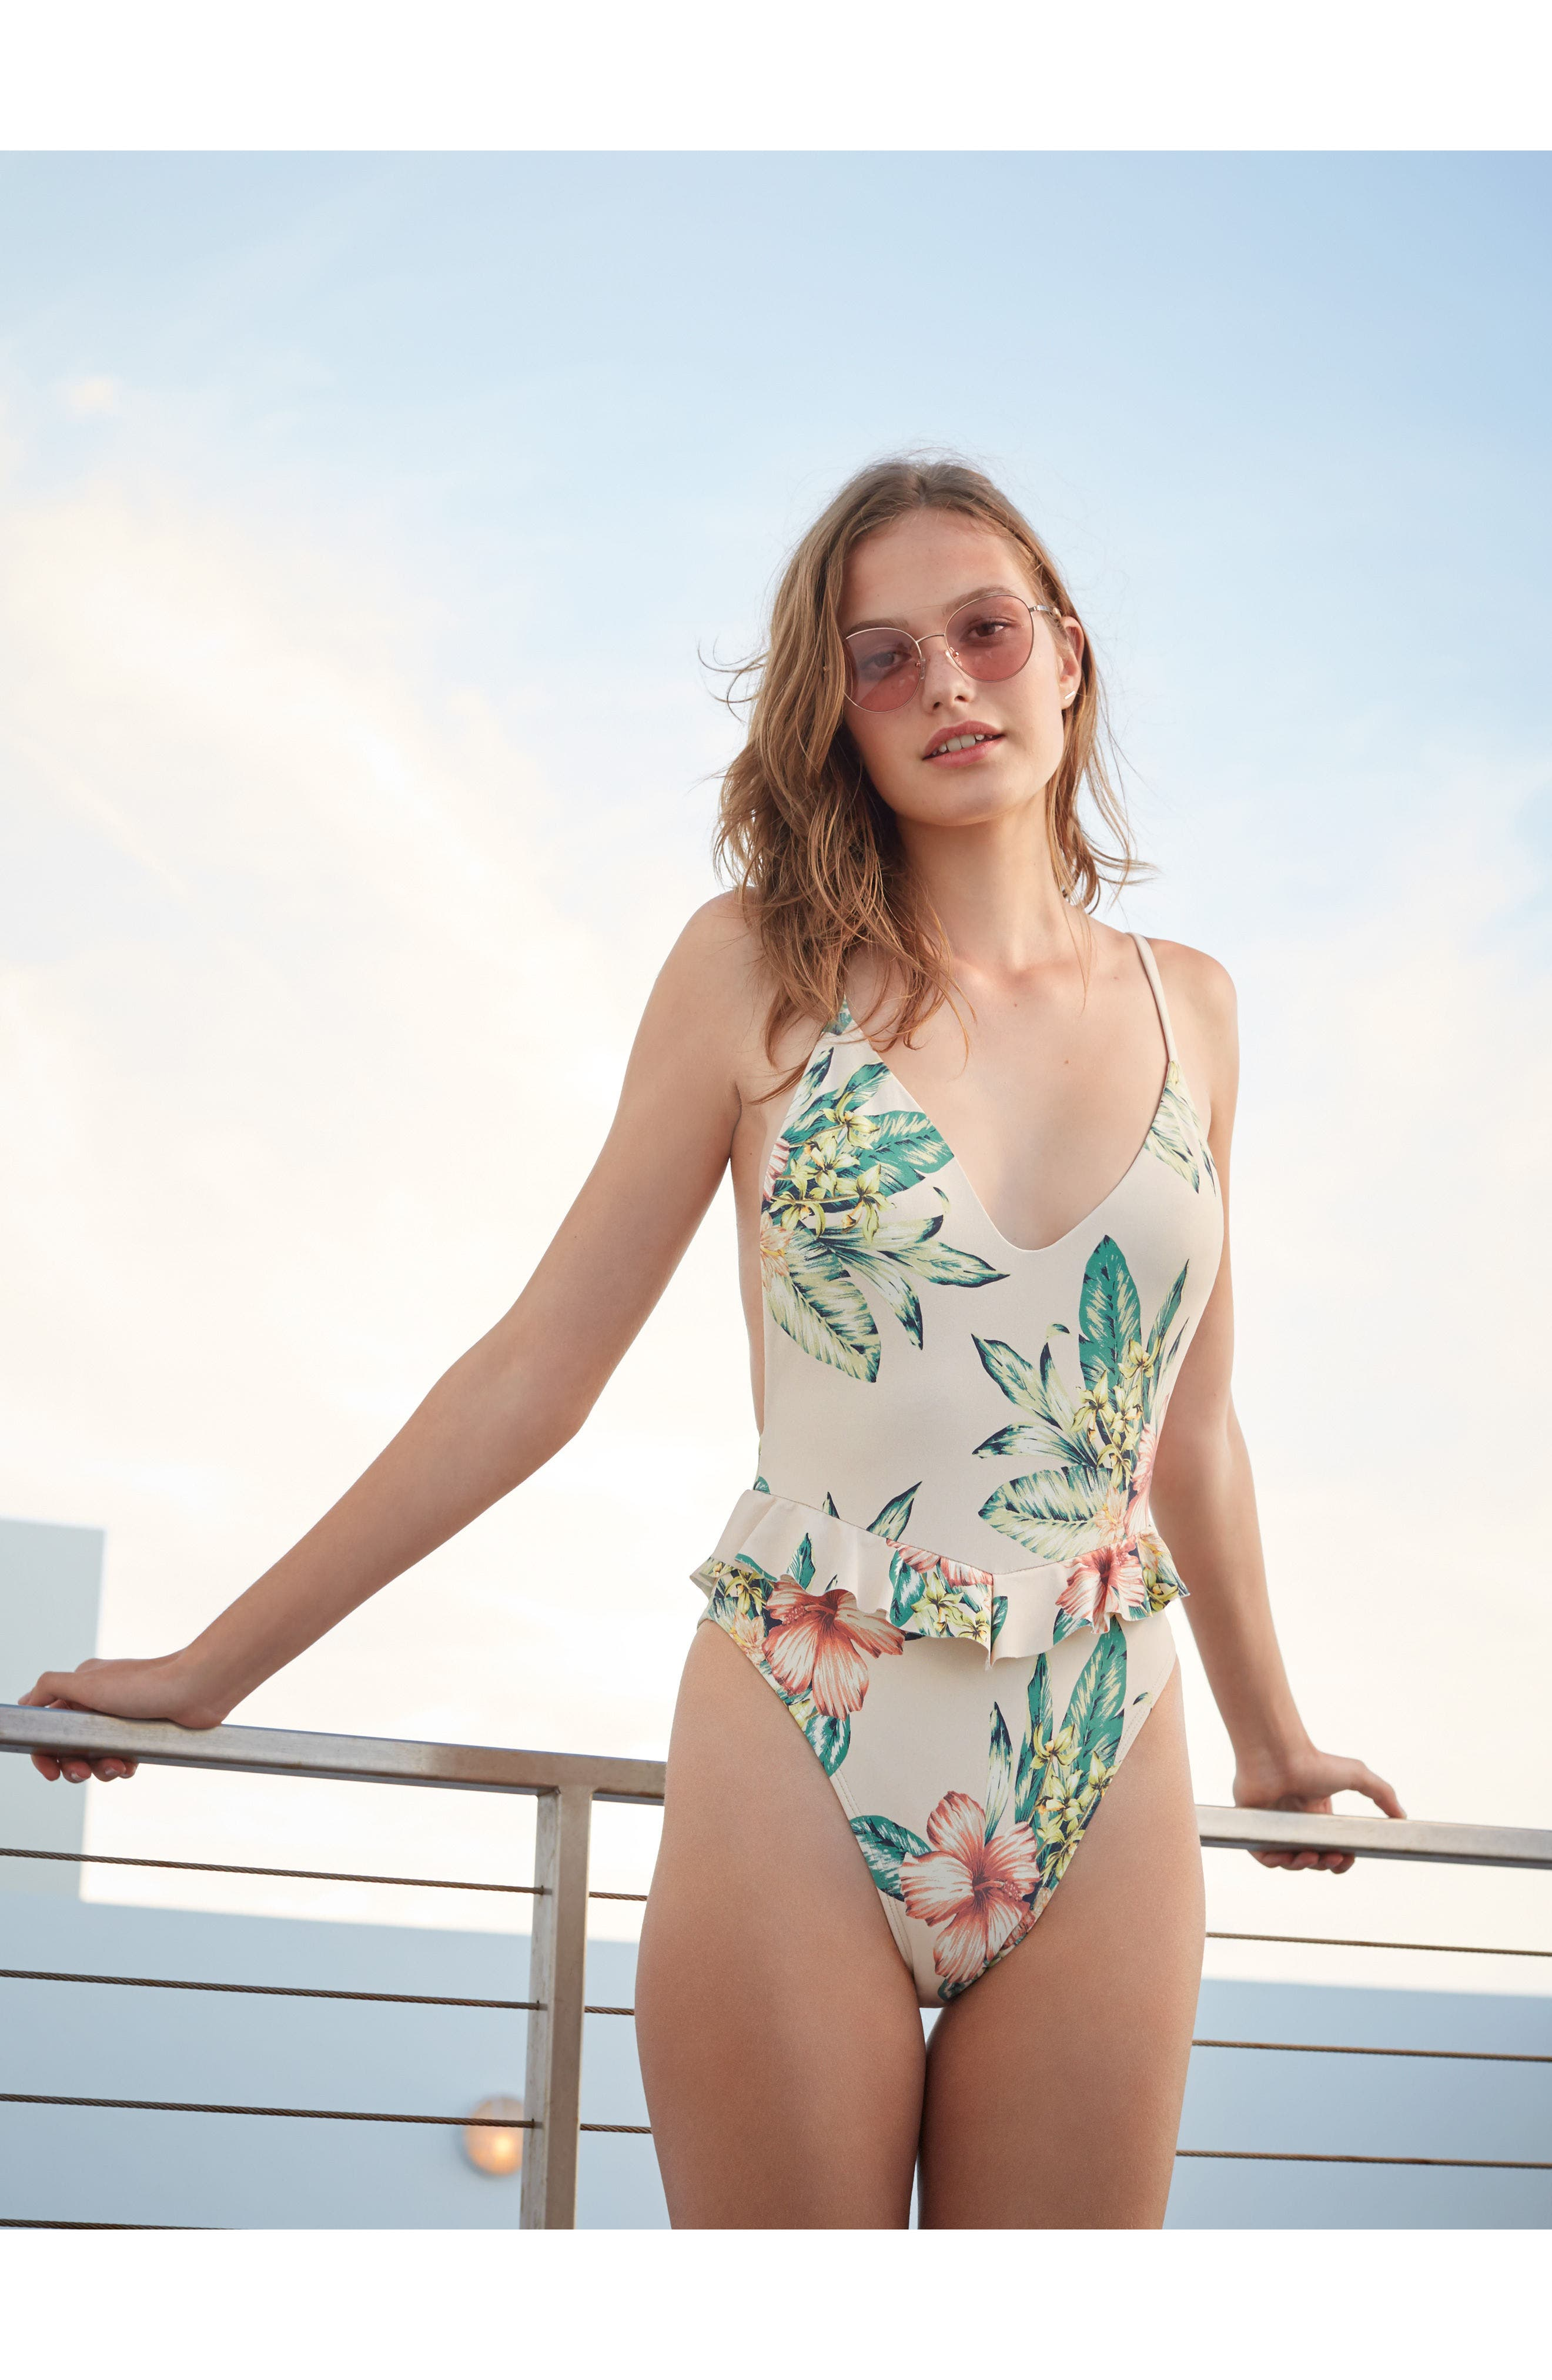 Cynthia One-Piece Swimsuit,                             Alternate thumbnail 7, color,                             100